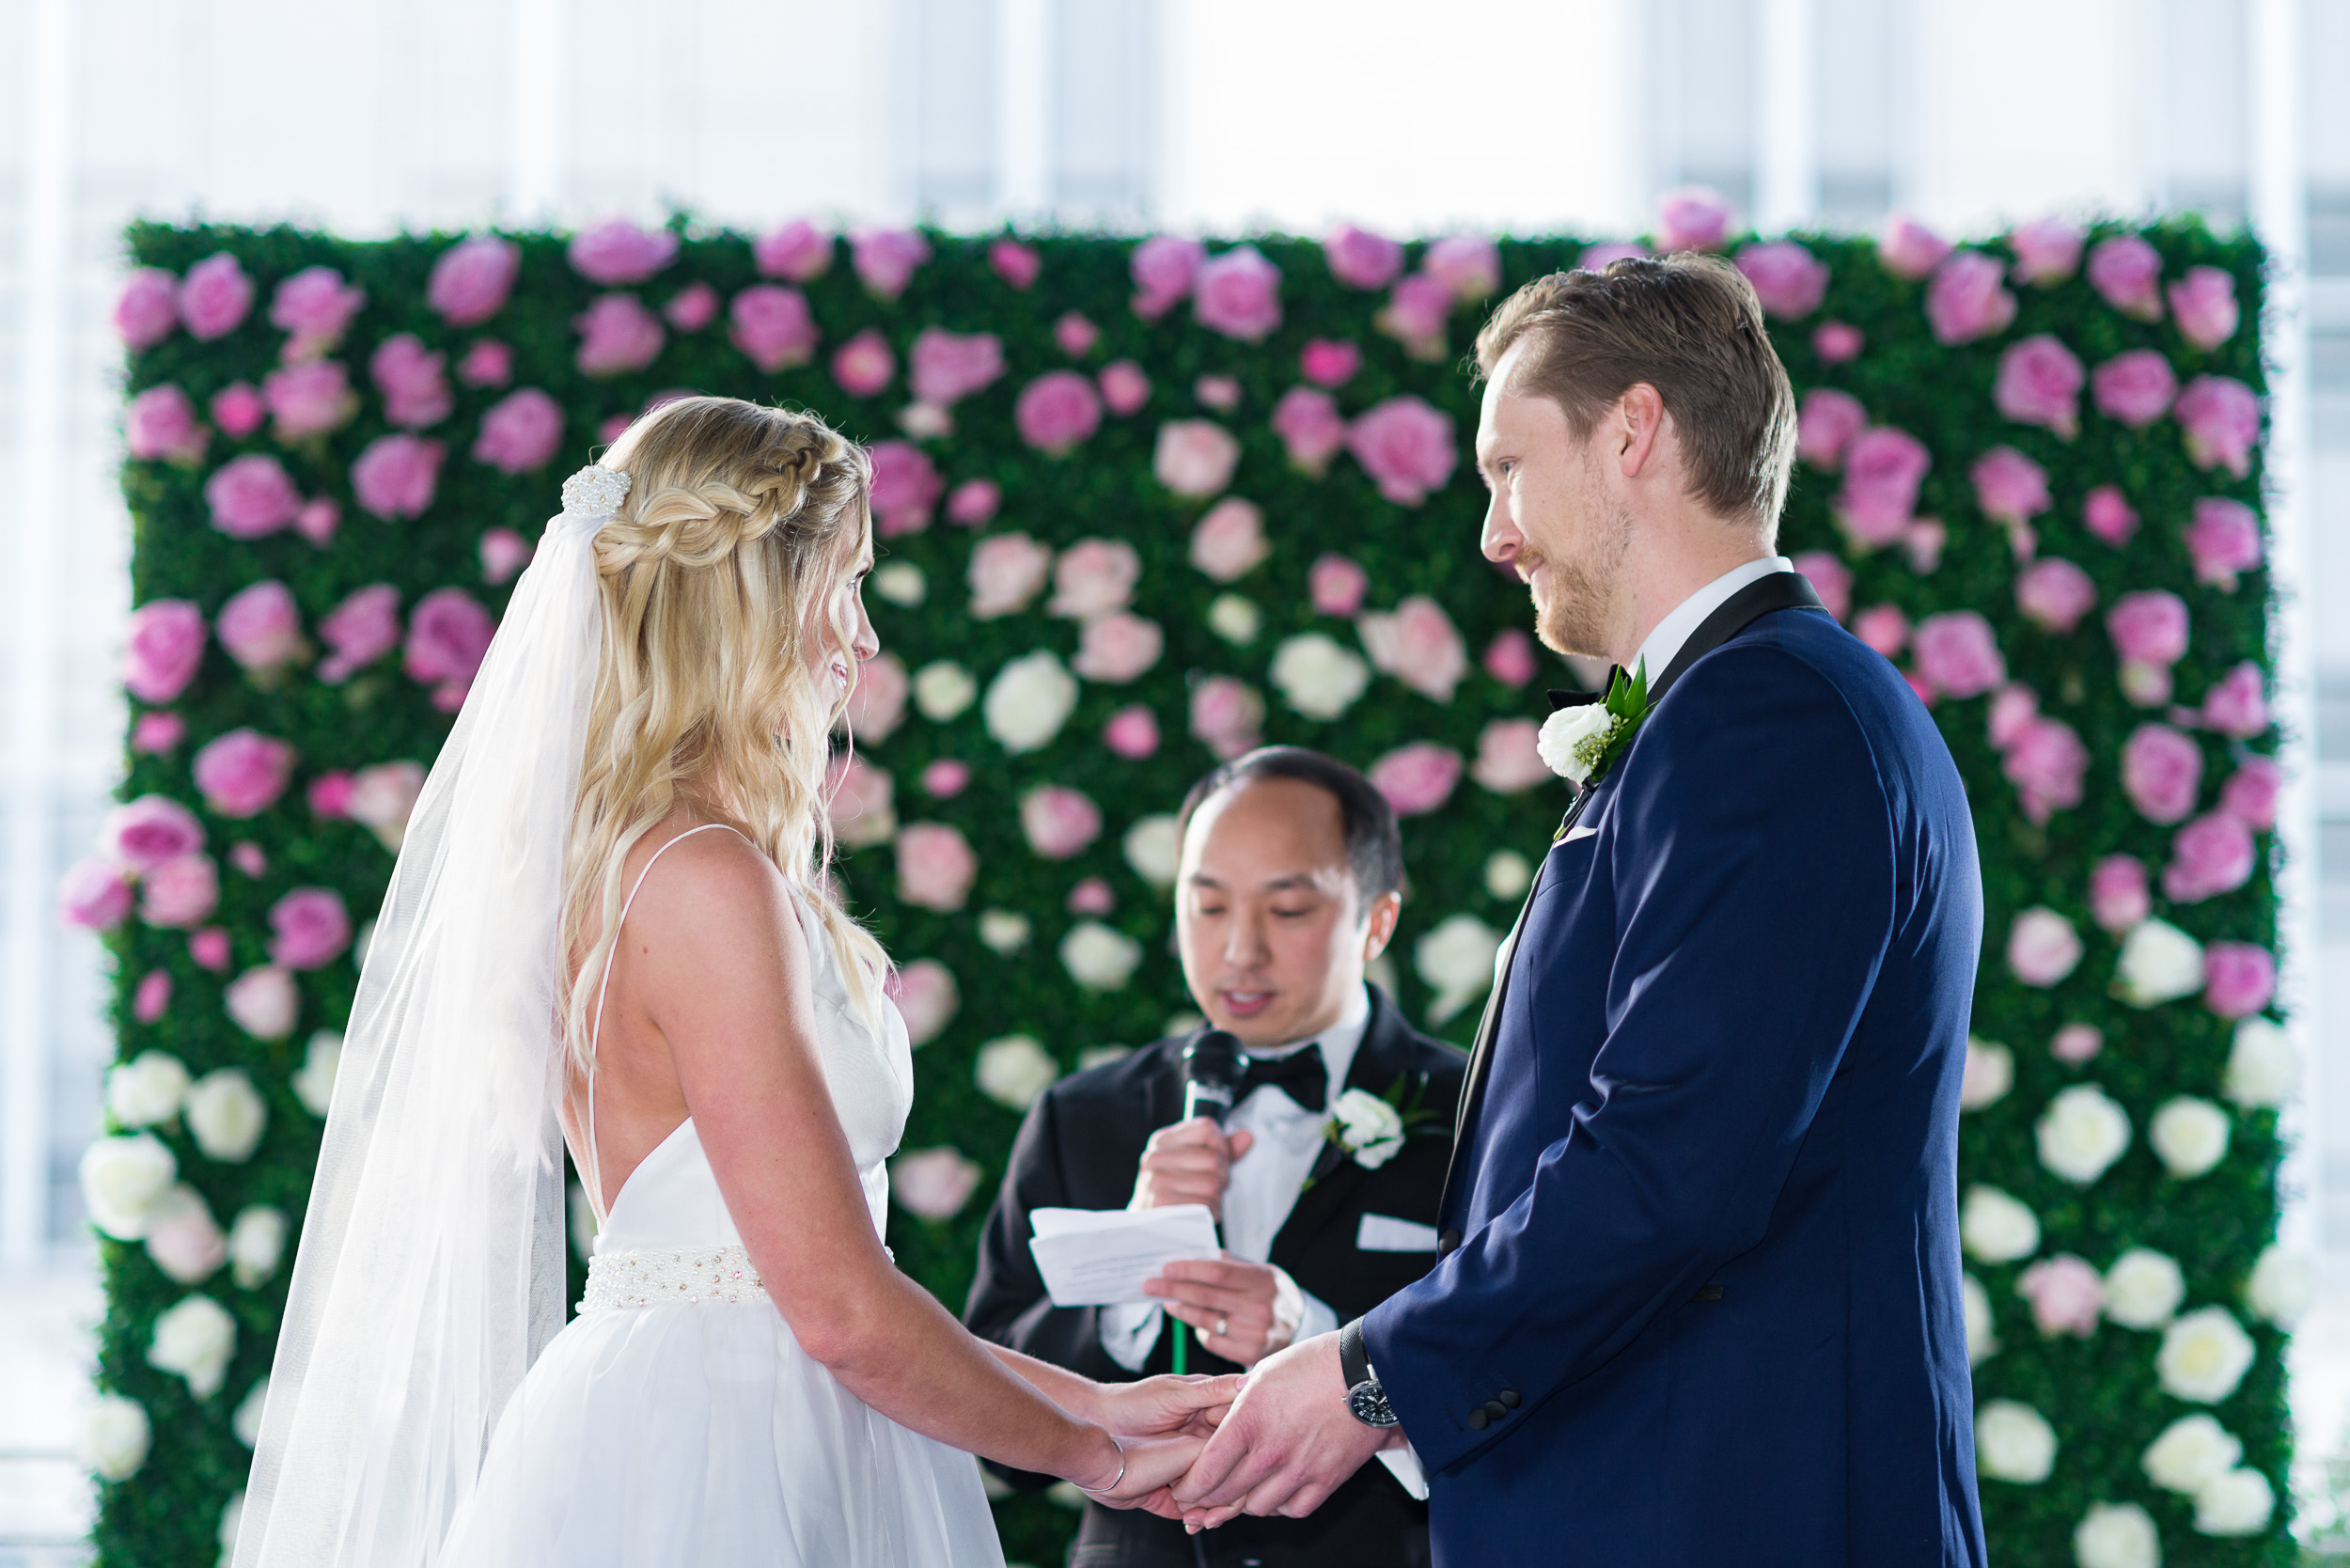 Austin-wedding-photographers-ceremony-brazos-hall-downtown-flower-backdrop-pink-roses